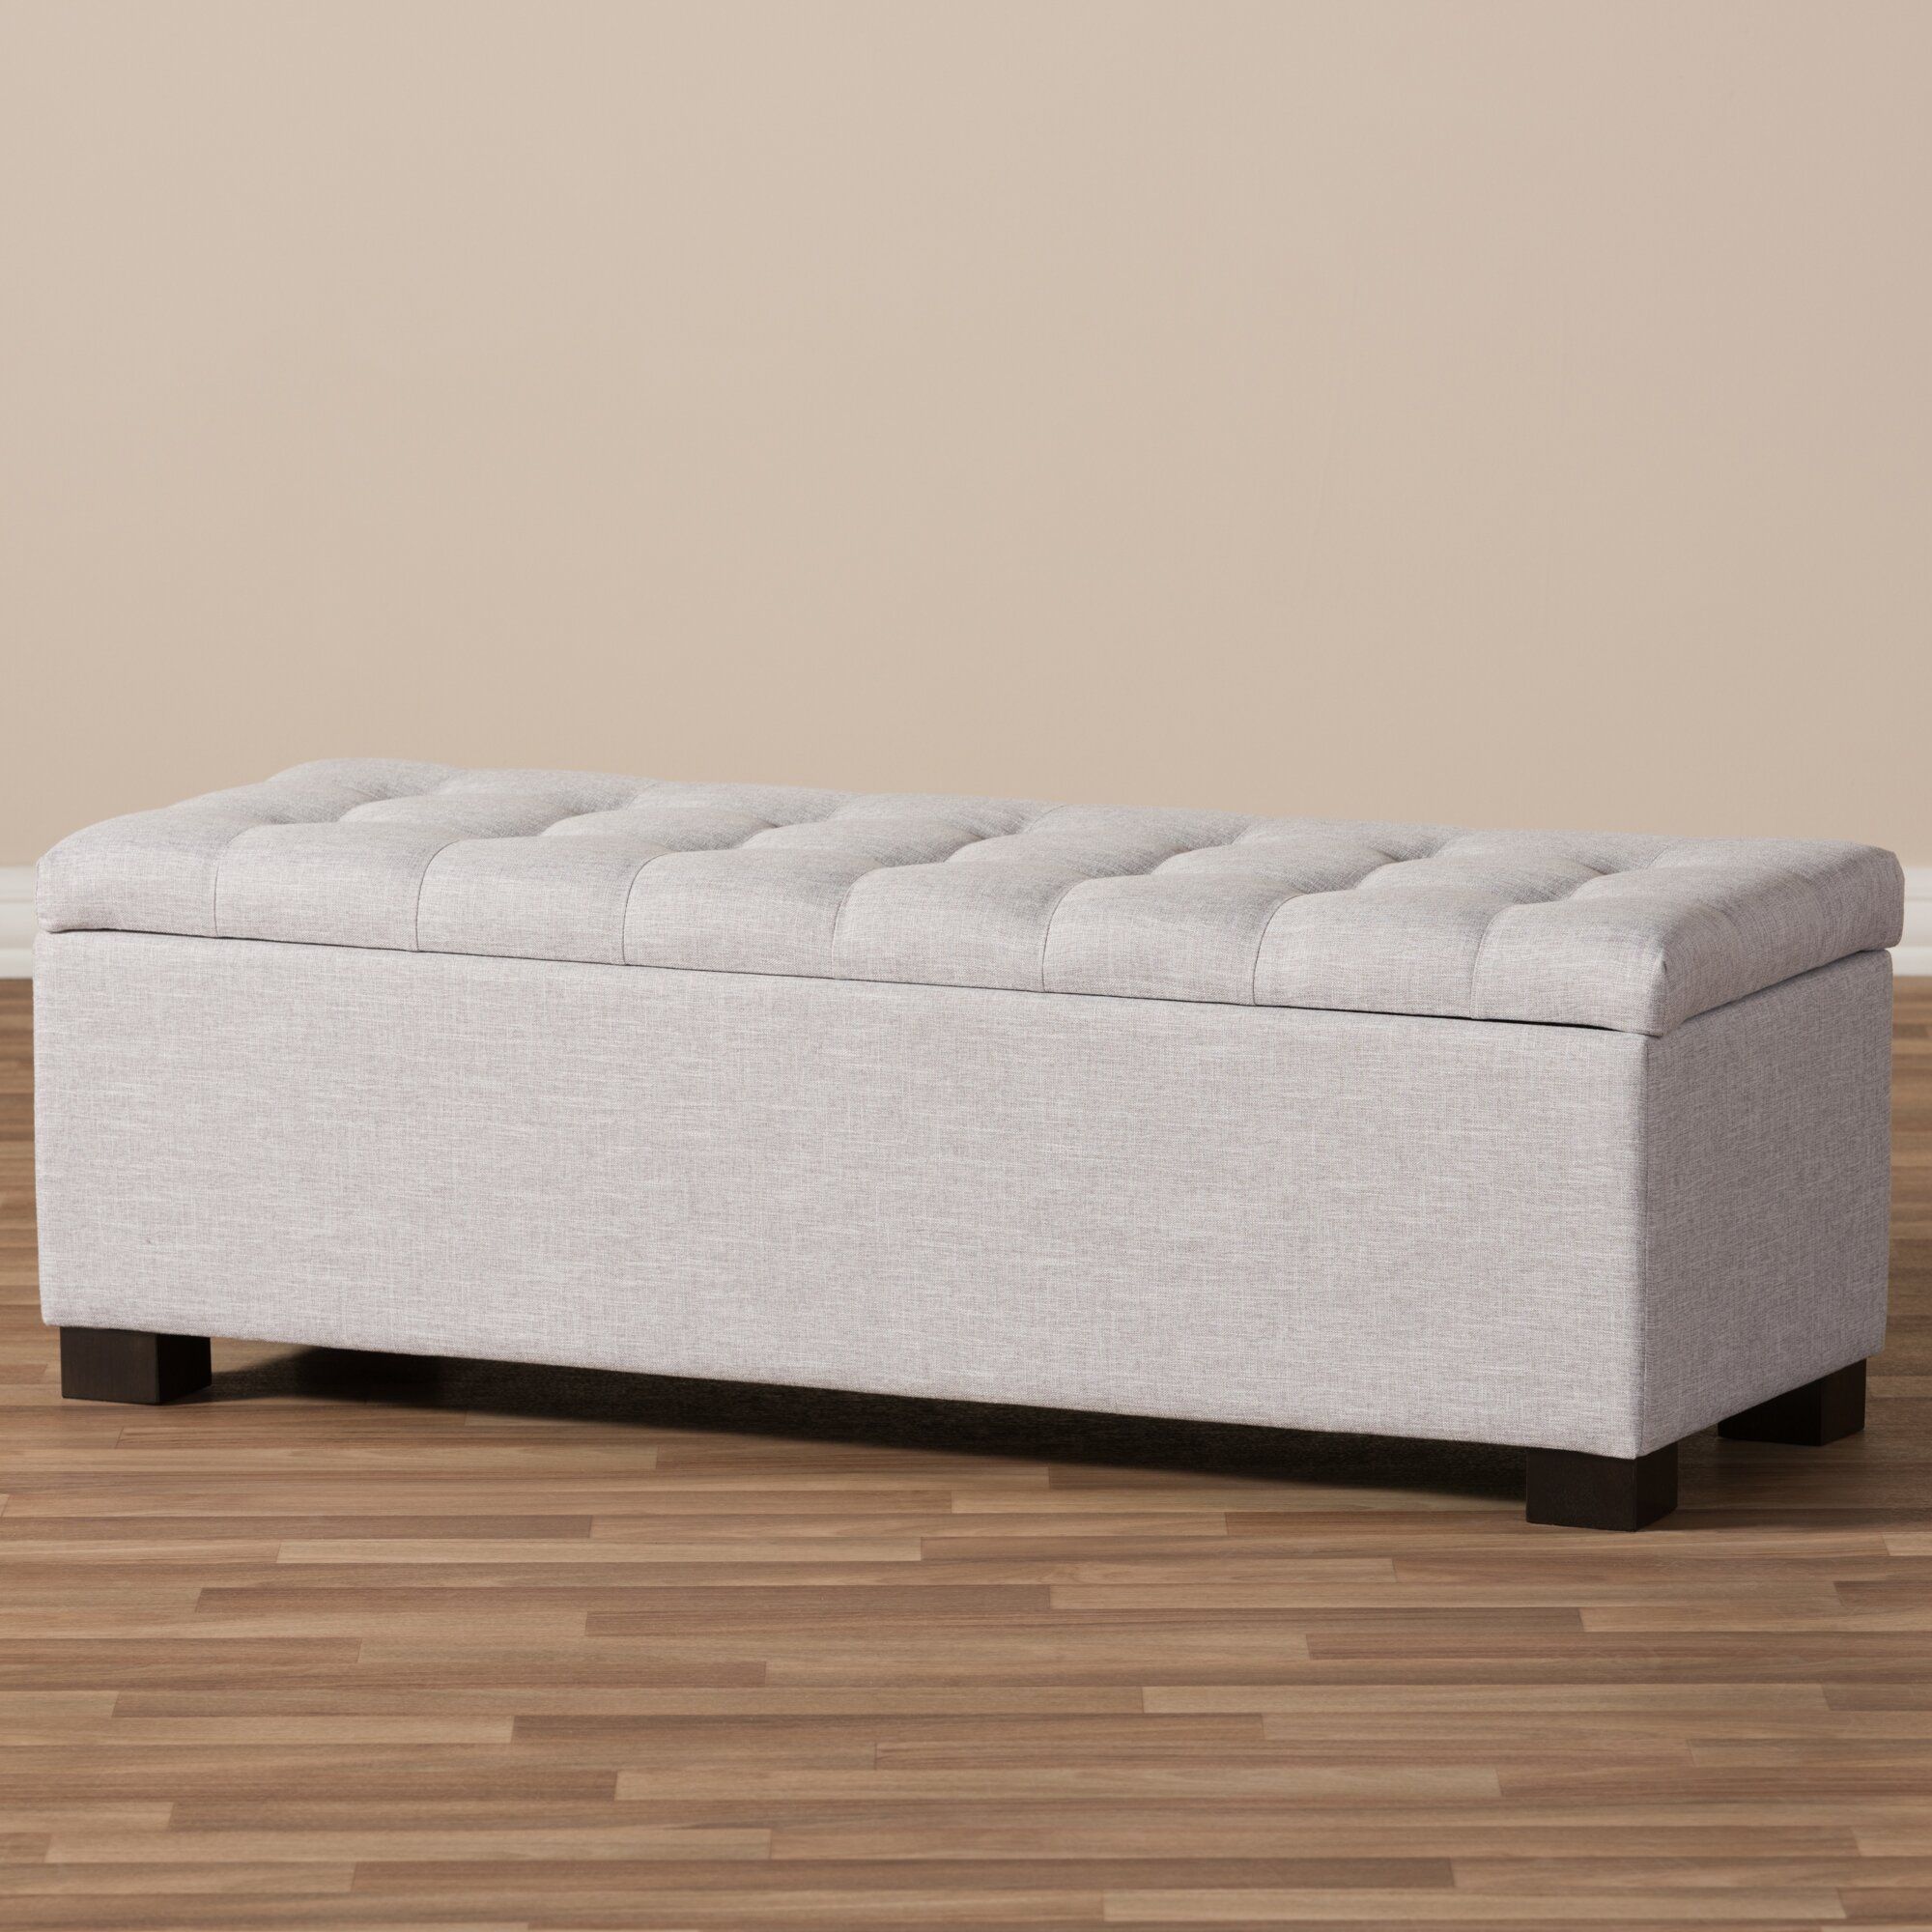 Varian Upholstered Storage Bedroom Bench Reviews: Latitude Run Kareem Upholstered Storage Bedroom Bench